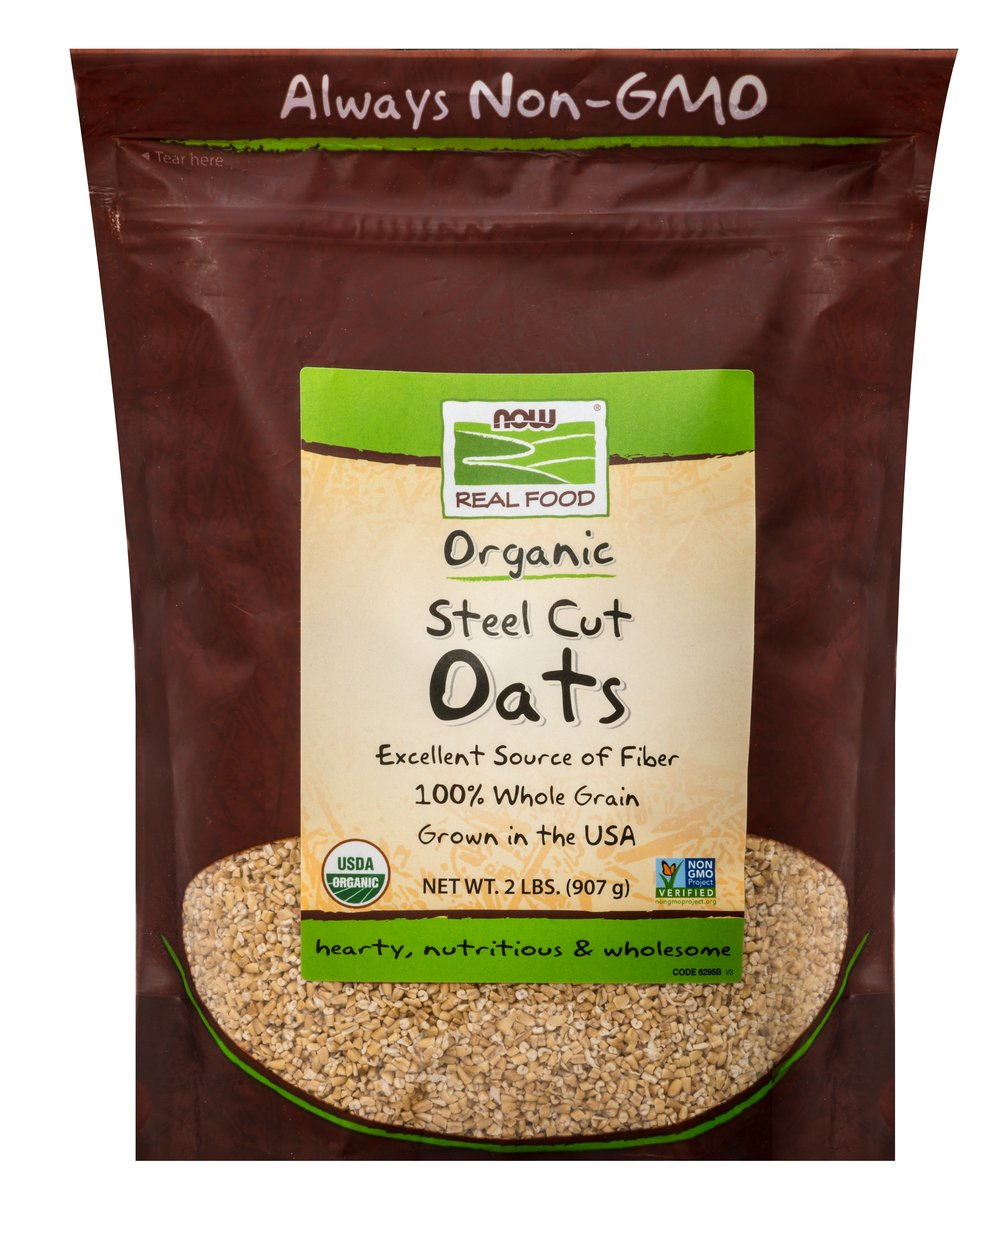 Steel Cut Oats <p>From the Manufacturer:</p><p>Hearty, nutritious, and wholesome. Steel cut oats are whole grain oat groats that have been cut into smaller pieces rather than being rolled to create rolled oats. Commonly used as a breakfast cereal.</p> 2 lb Bag  $9.99